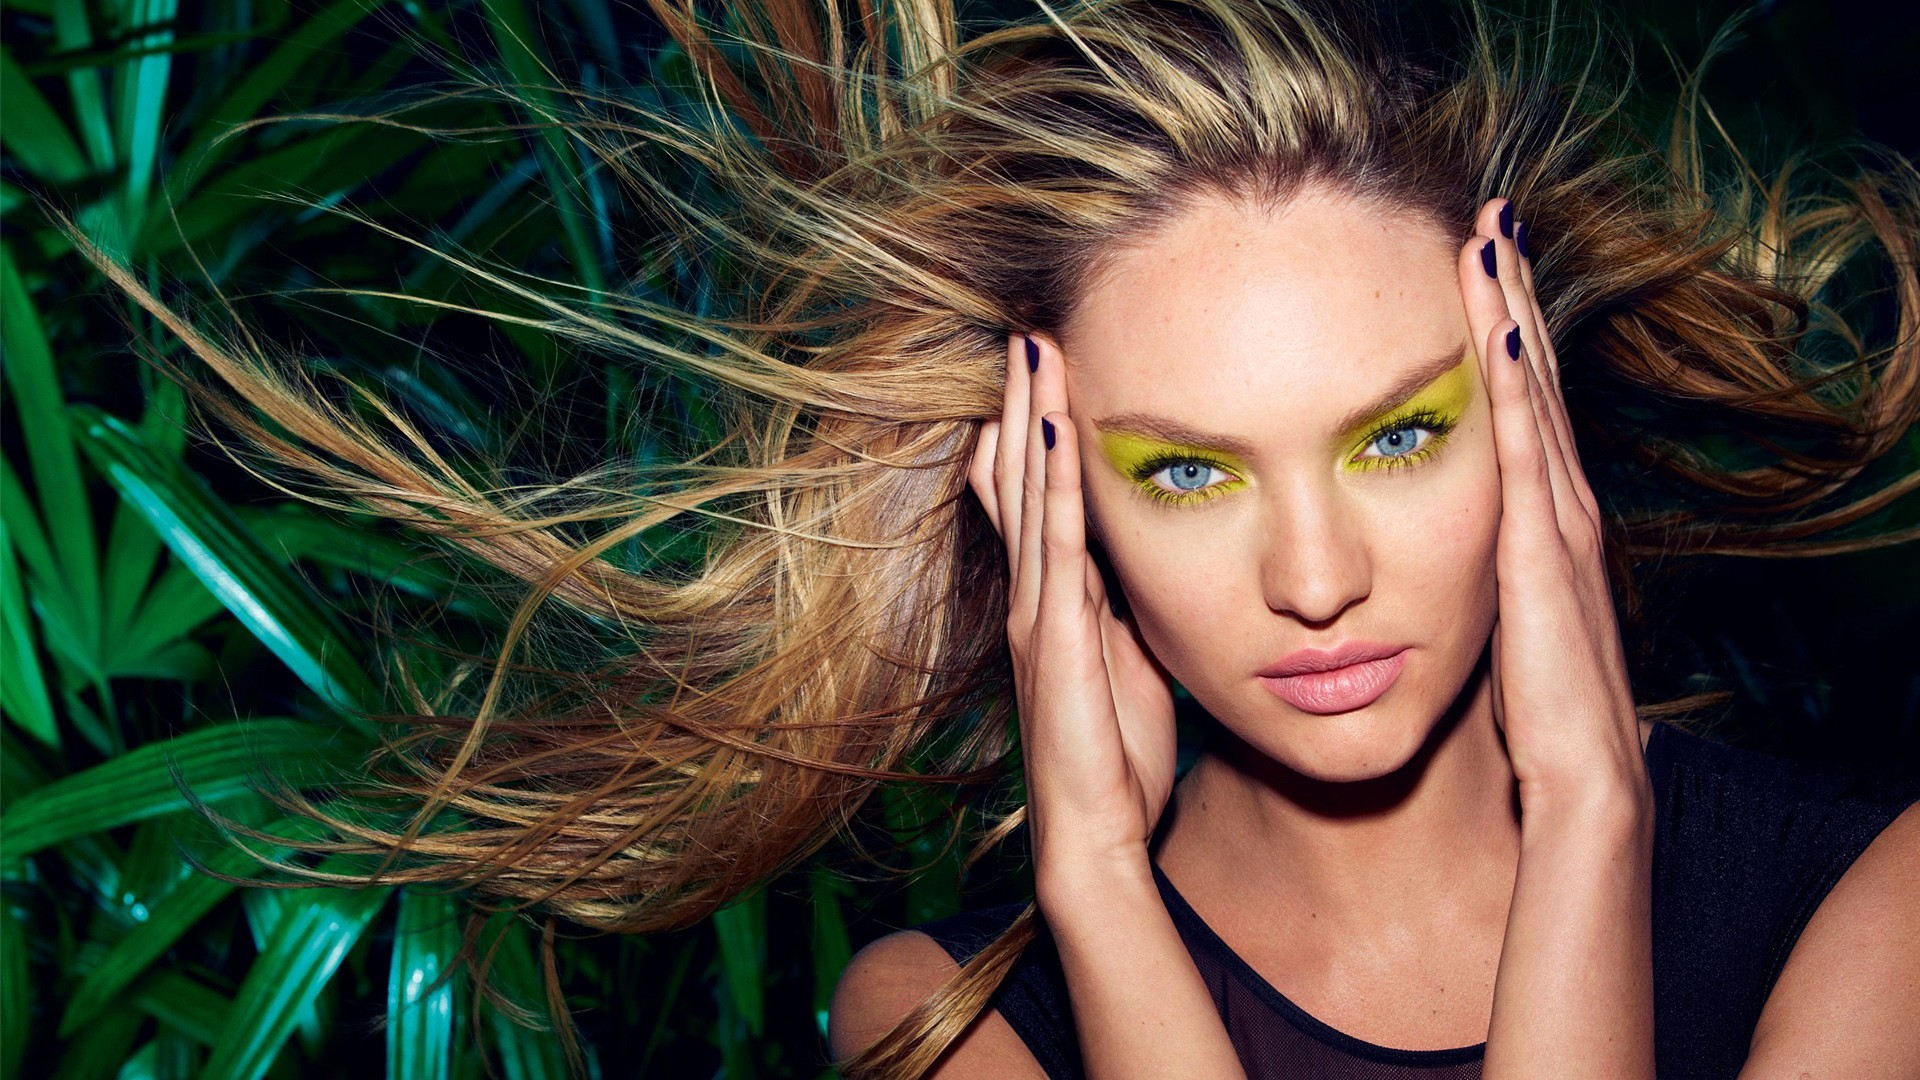 Hd Wallpaper Candice Swanepoel 2014 Wallpapers Hd Wallpapers Id 14086